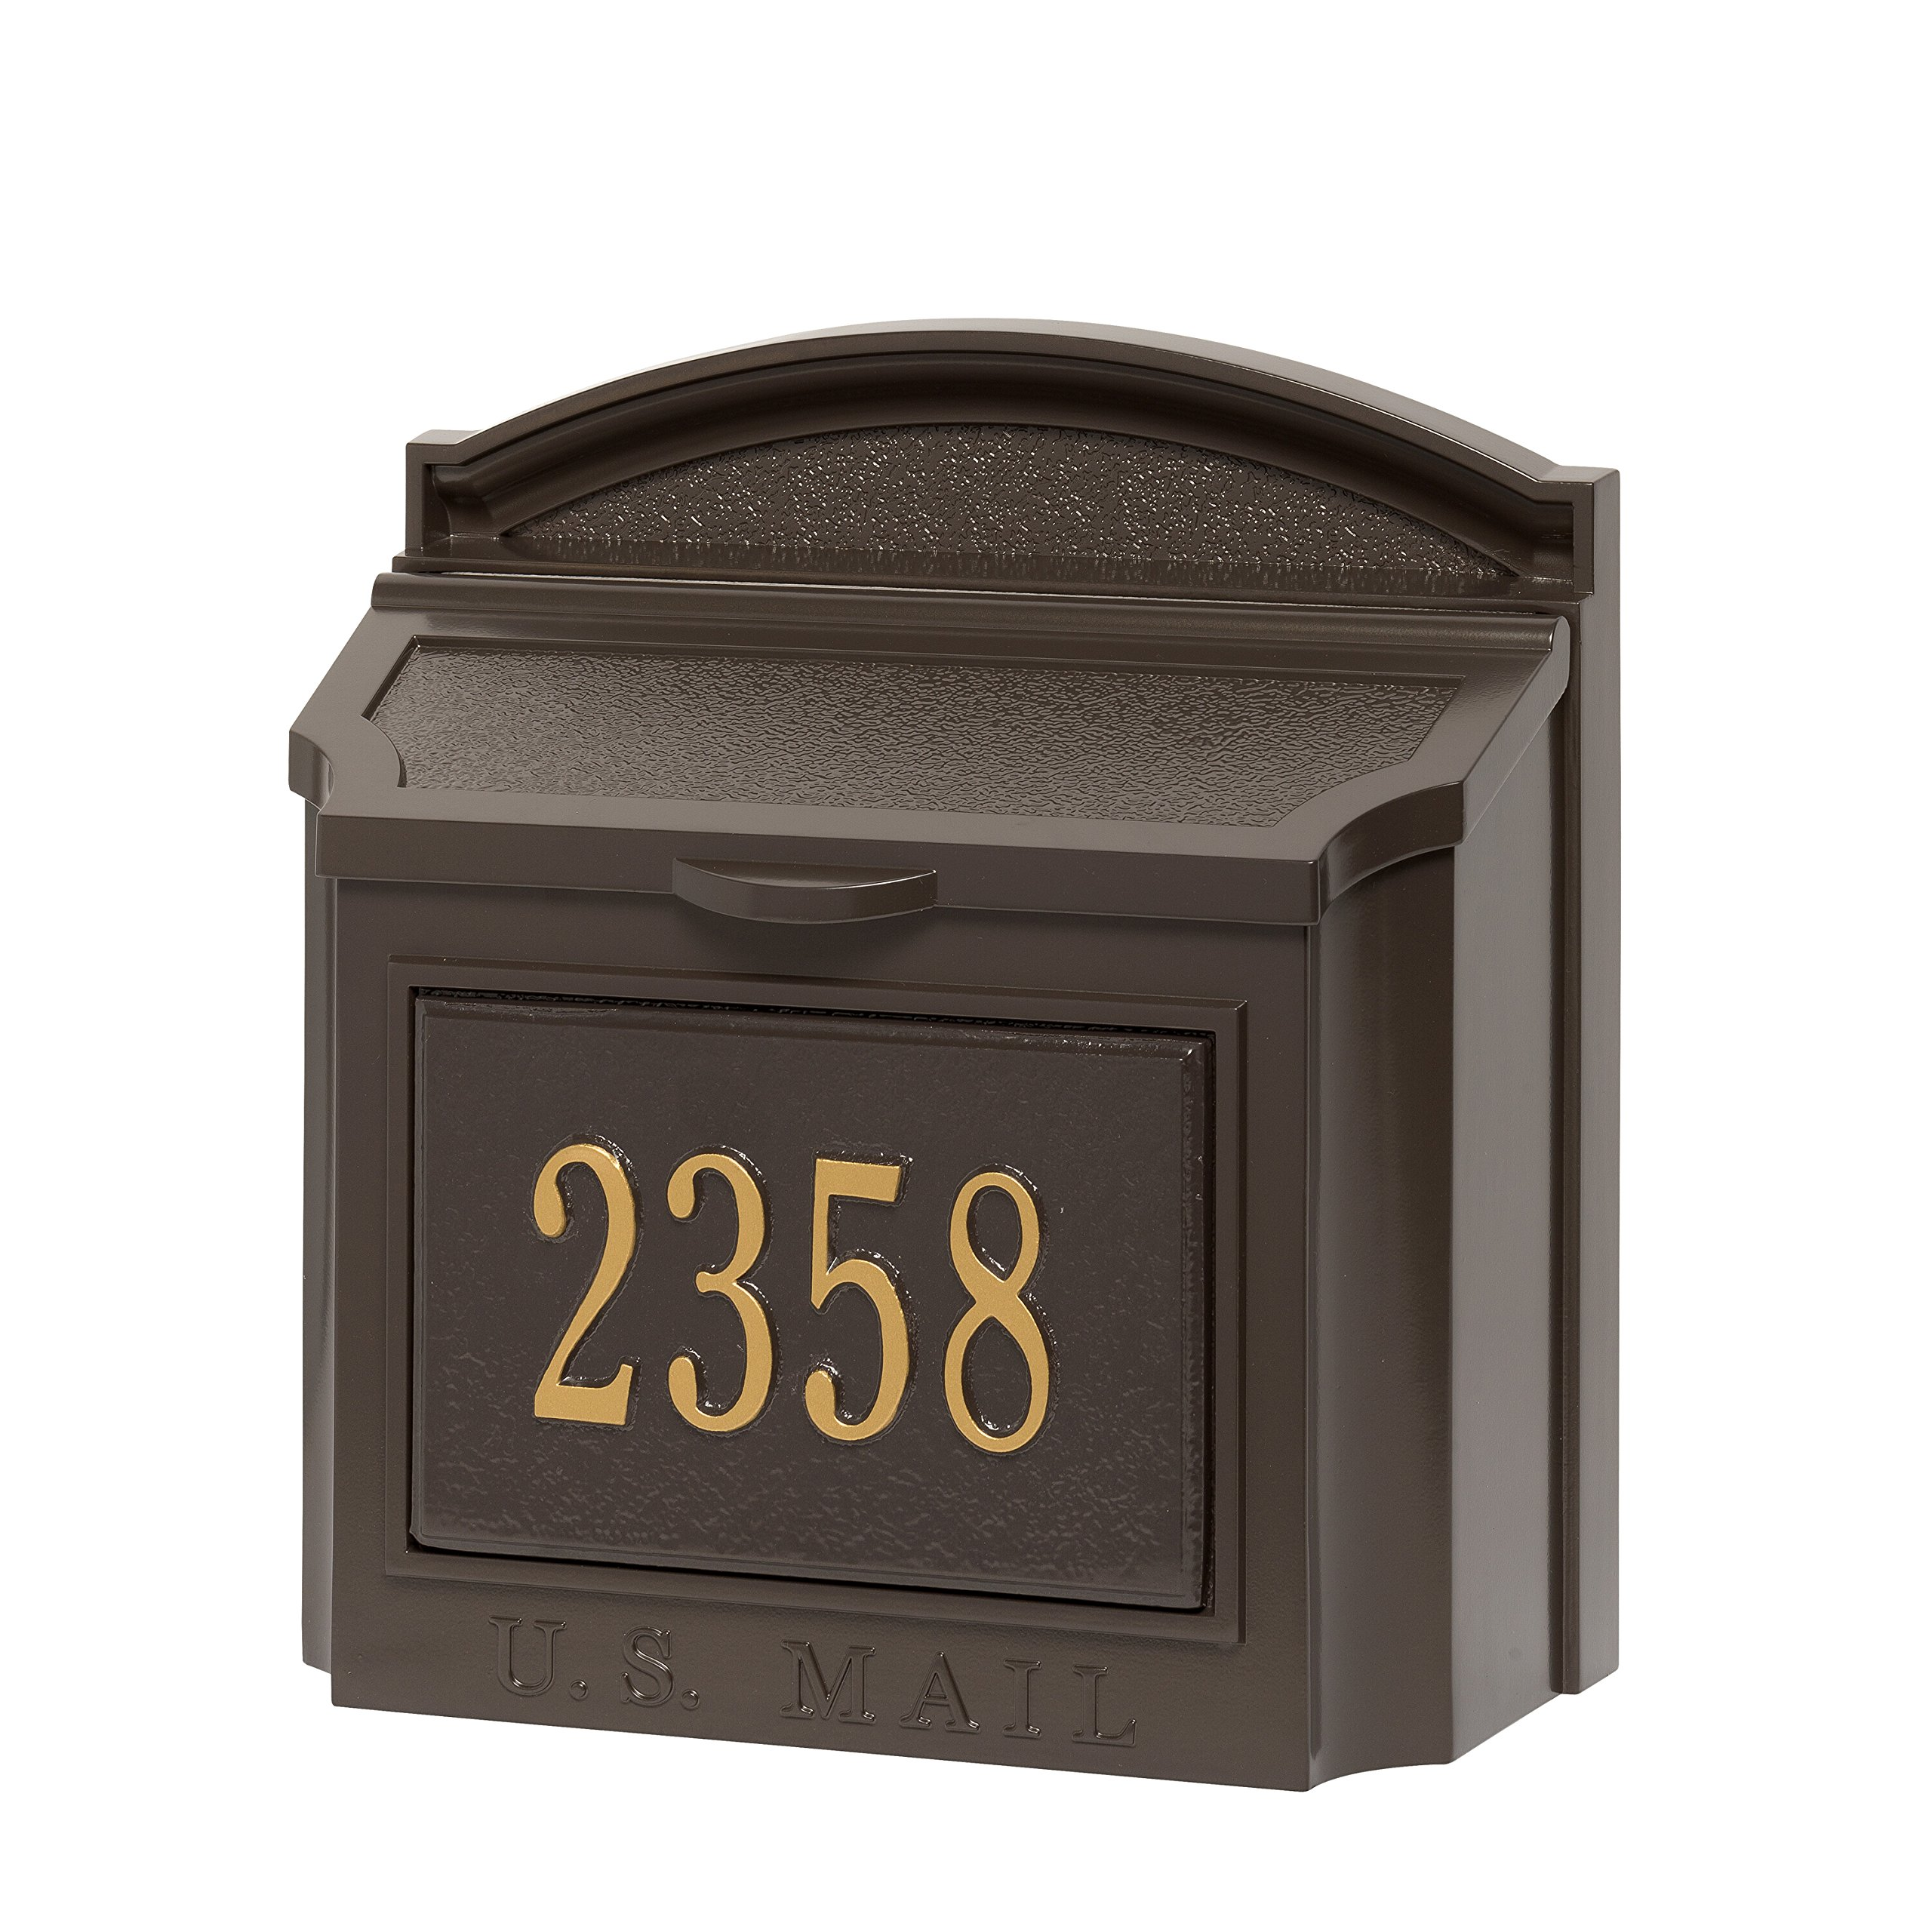 Customized Cast Aluminum Wall Mailbox with Custom Address Numbers Plaque 15''H x 14.5''W x 8''D